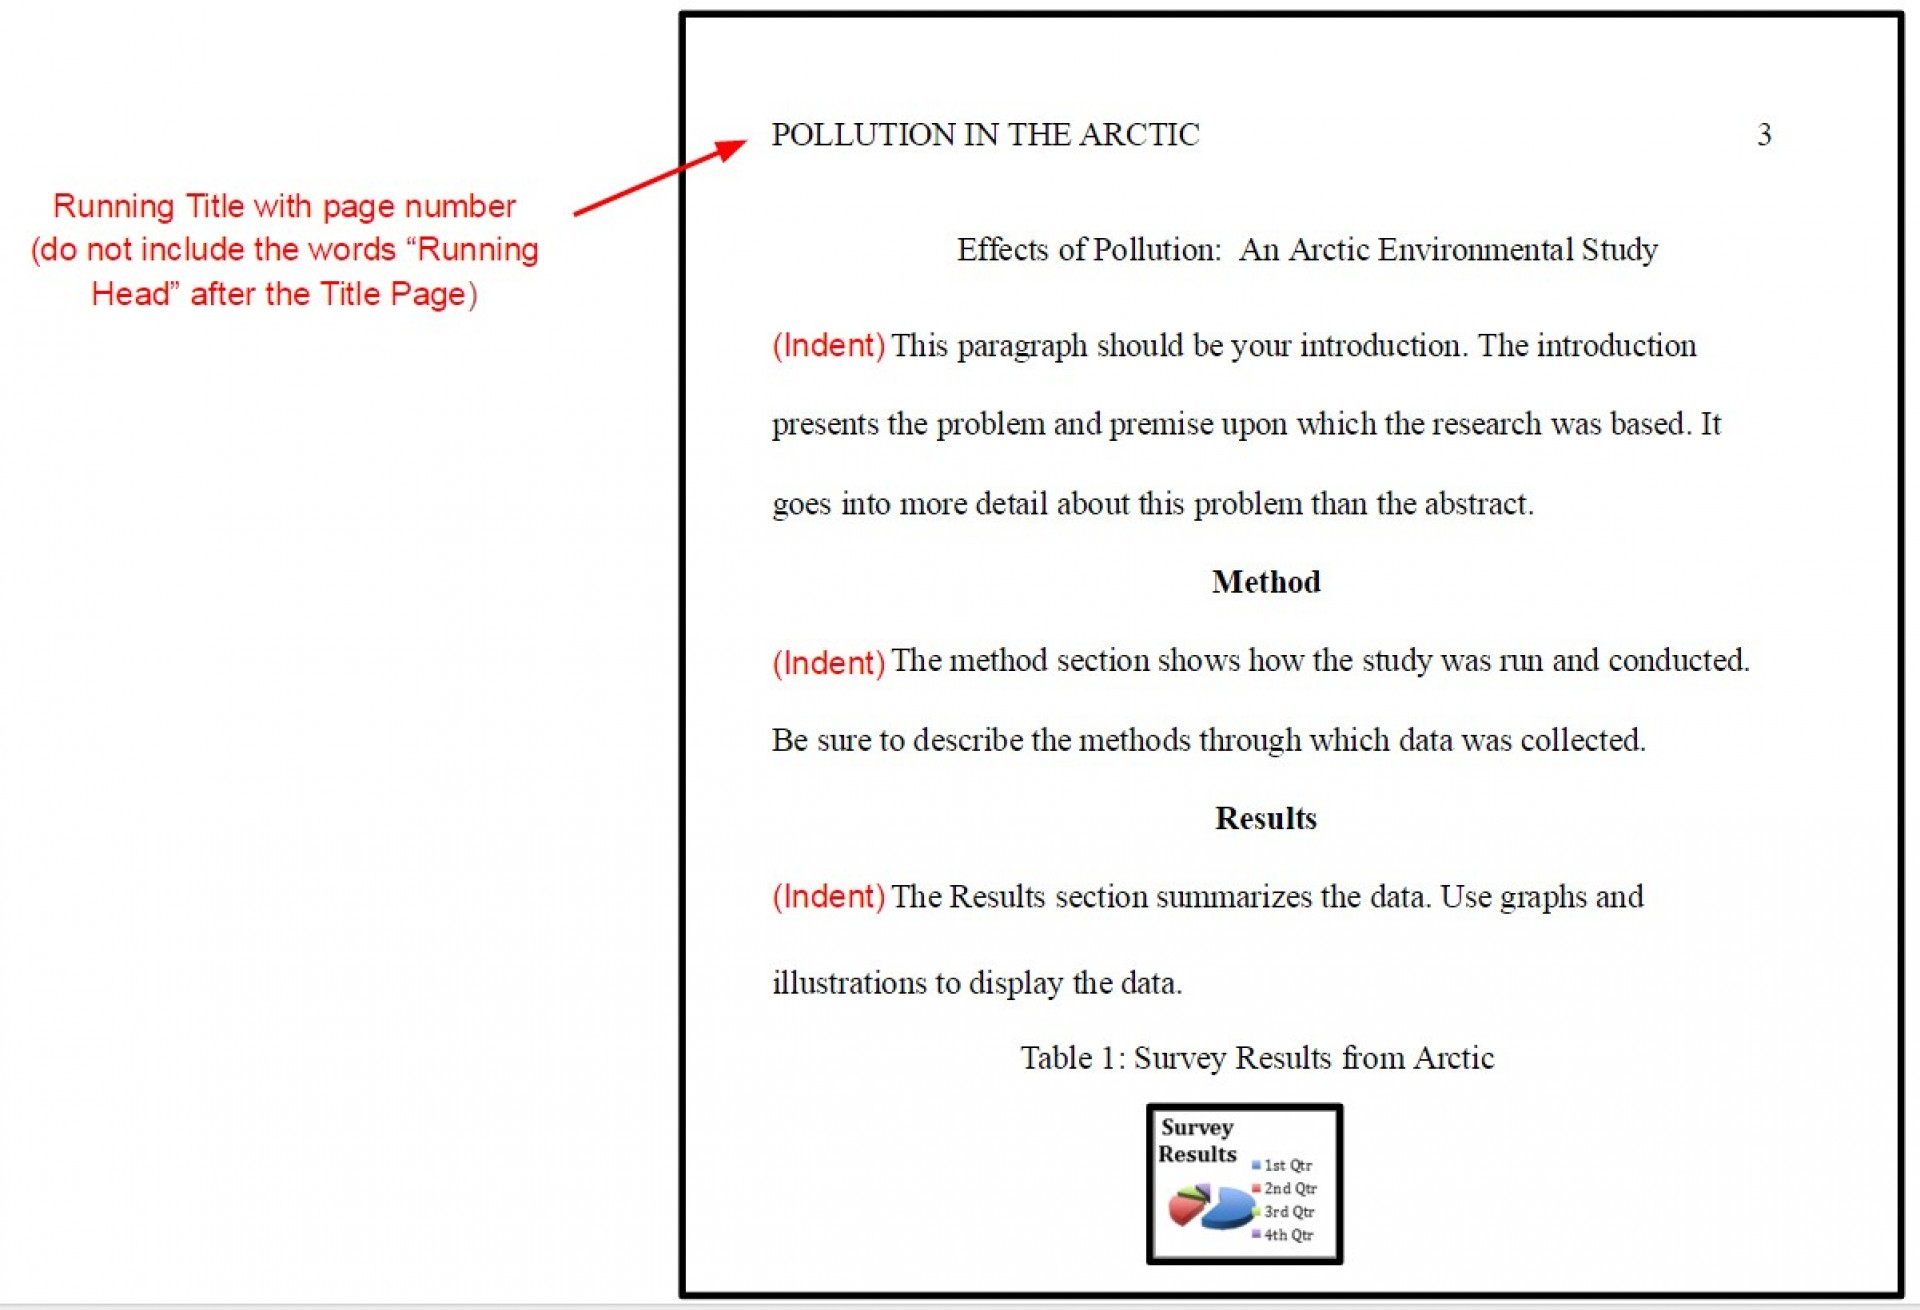 004 Research Paperpamethods How To Writenbstract Inpa Style For Stunning Write An Abstract In Apa A Paper 1920